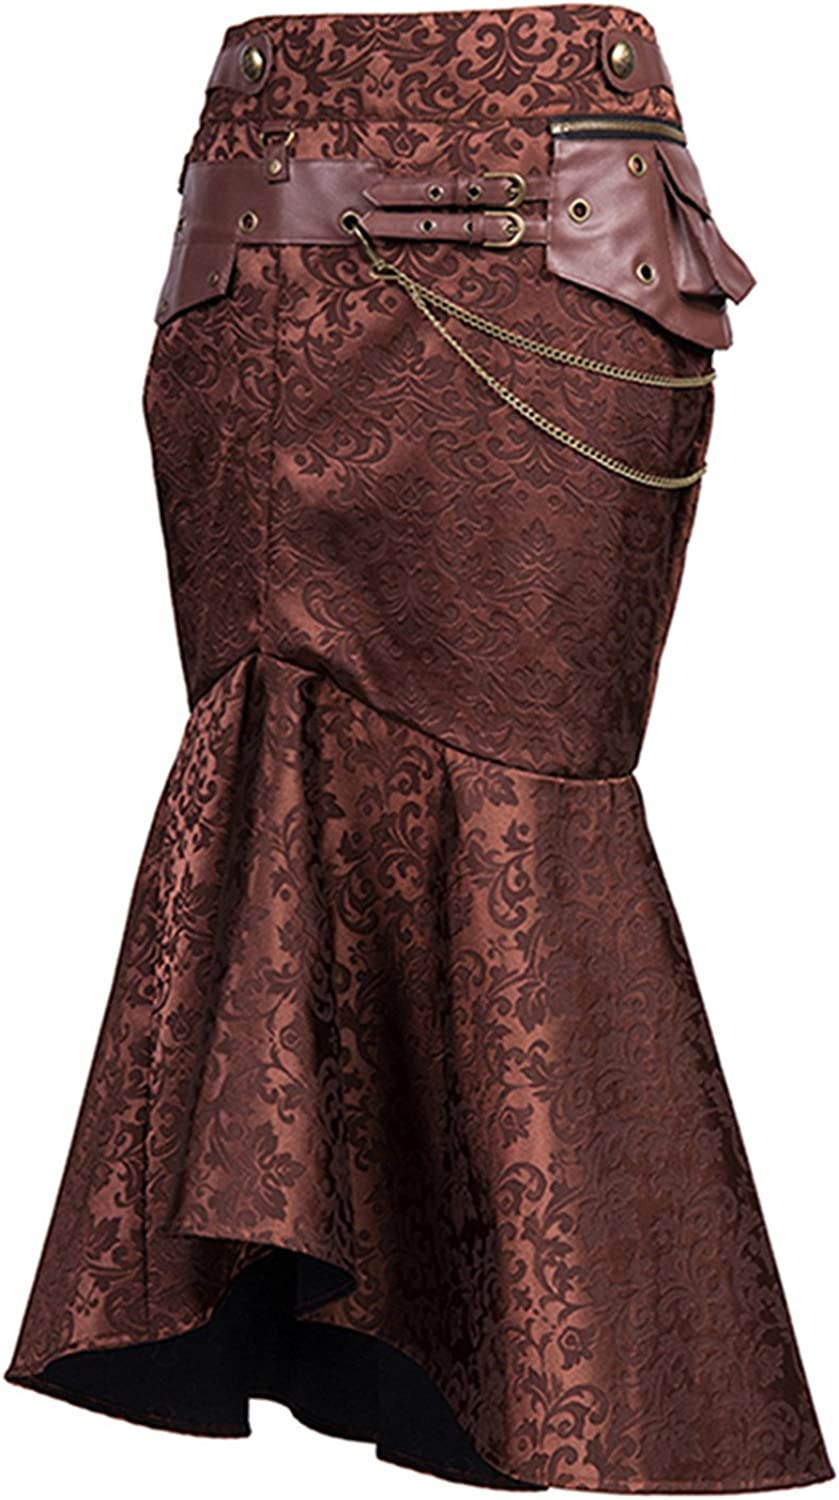 Charmian Vintage Goth Steampunk Skirts for Women Brown Pouch Chain Sexy Slim Evening Party Long Fishtail Skirt